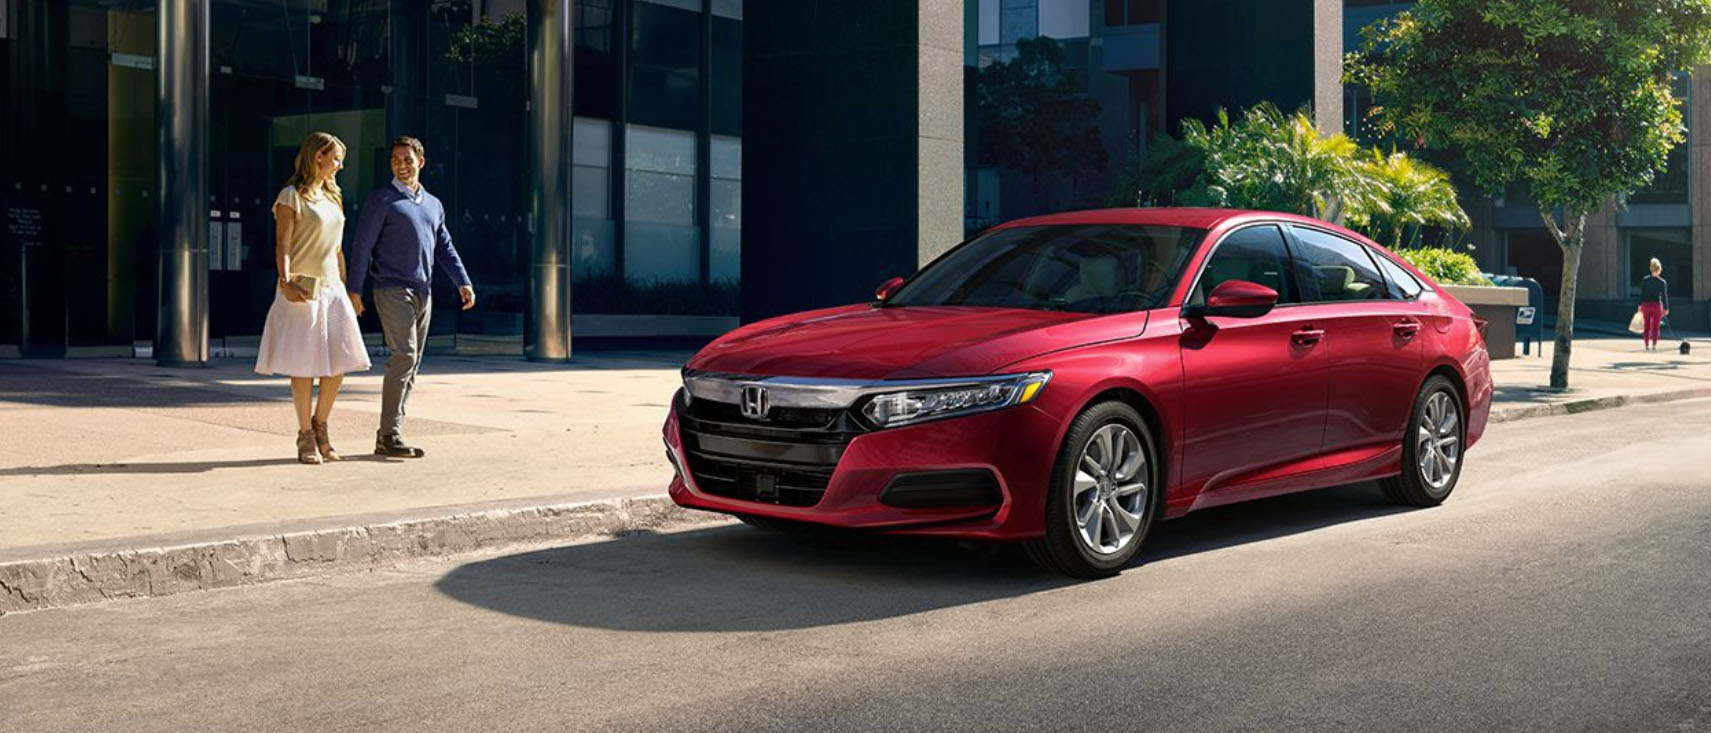 2020 Honda Accord Hybrid Appearance Main Img